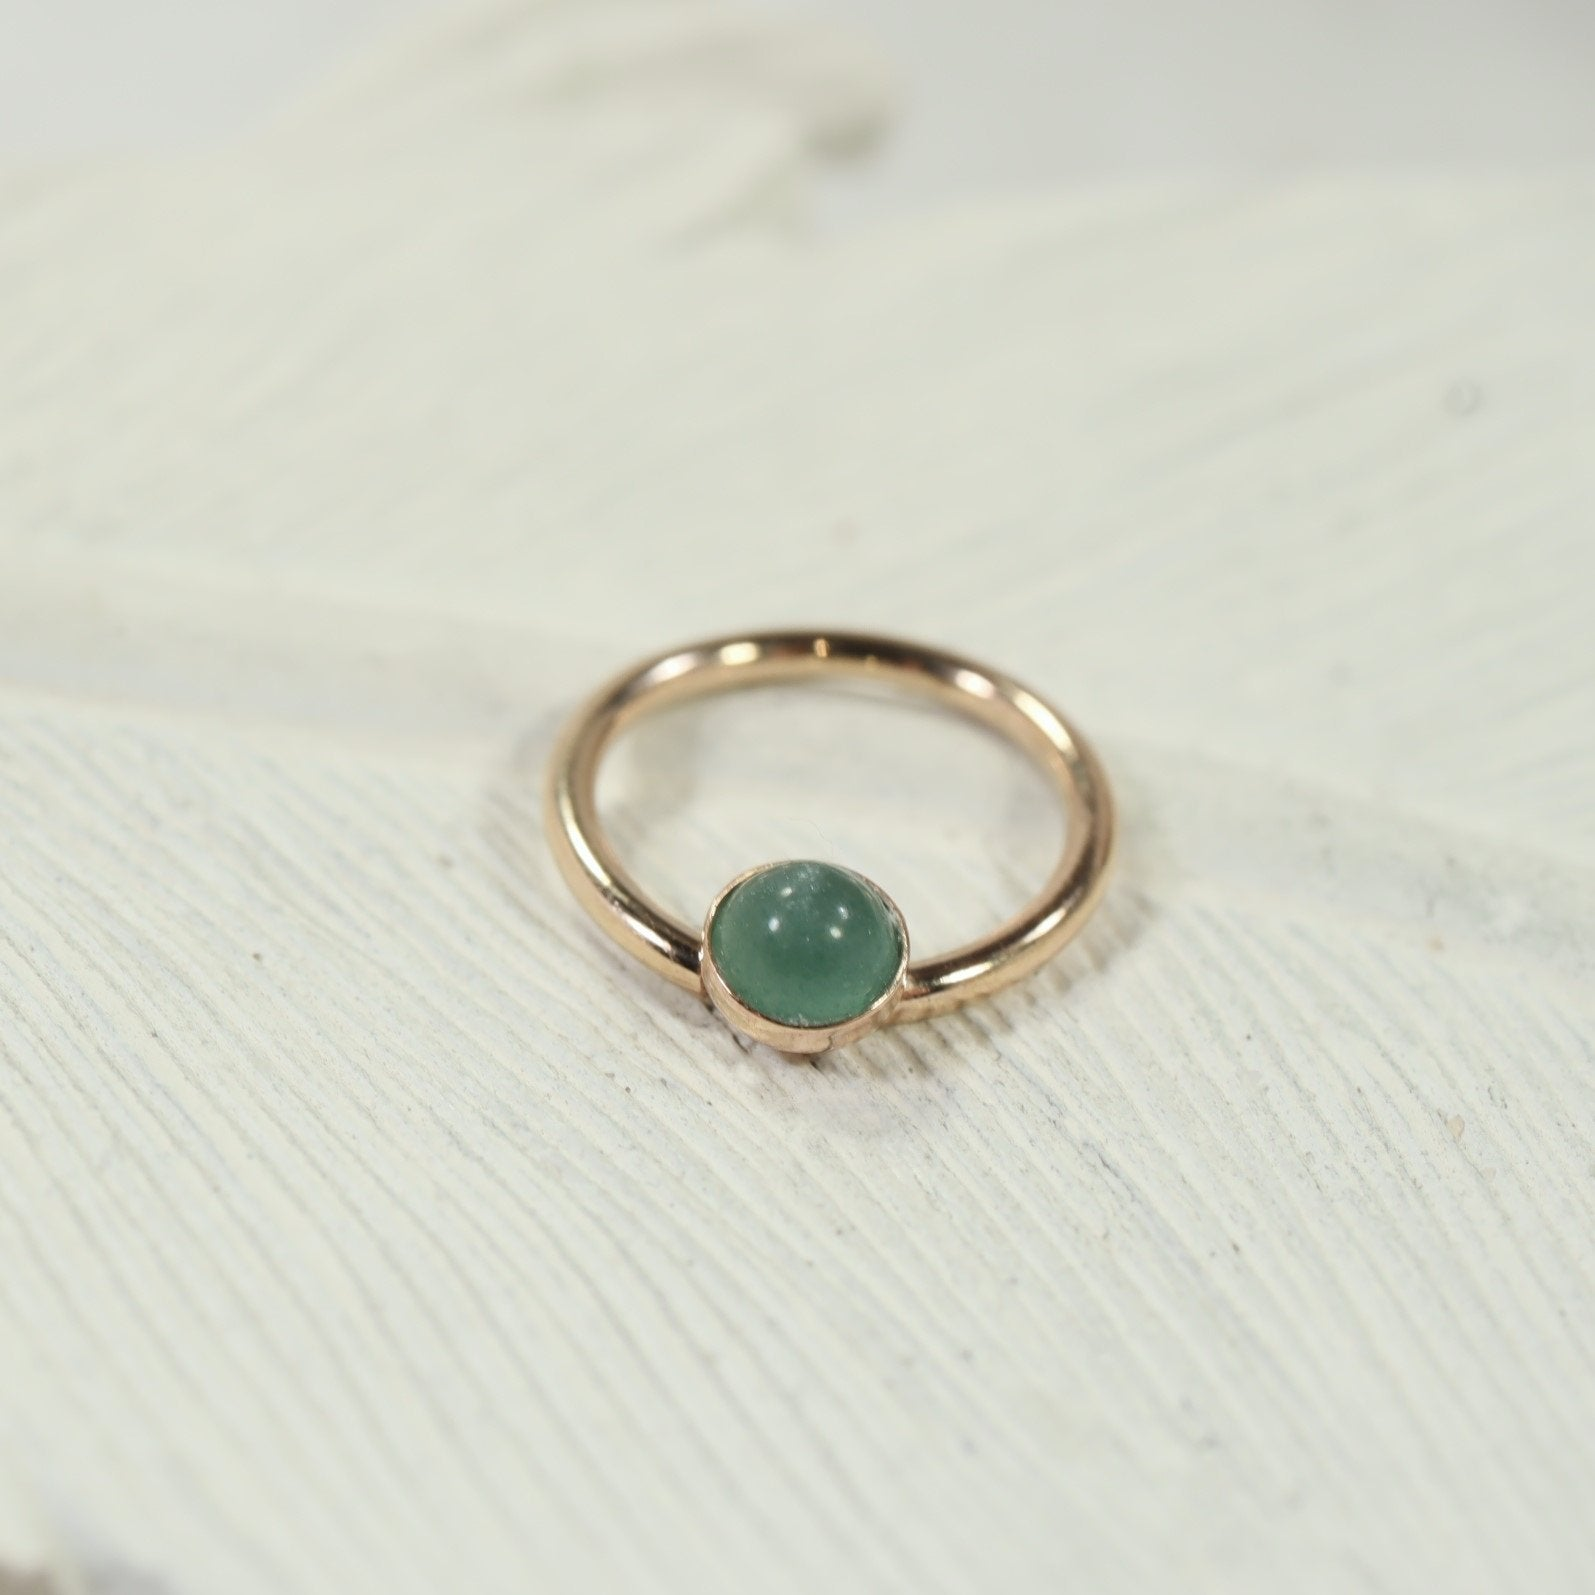 Septum Ring Gold 4mm Gemstone Your Choice Of Metal Gauge